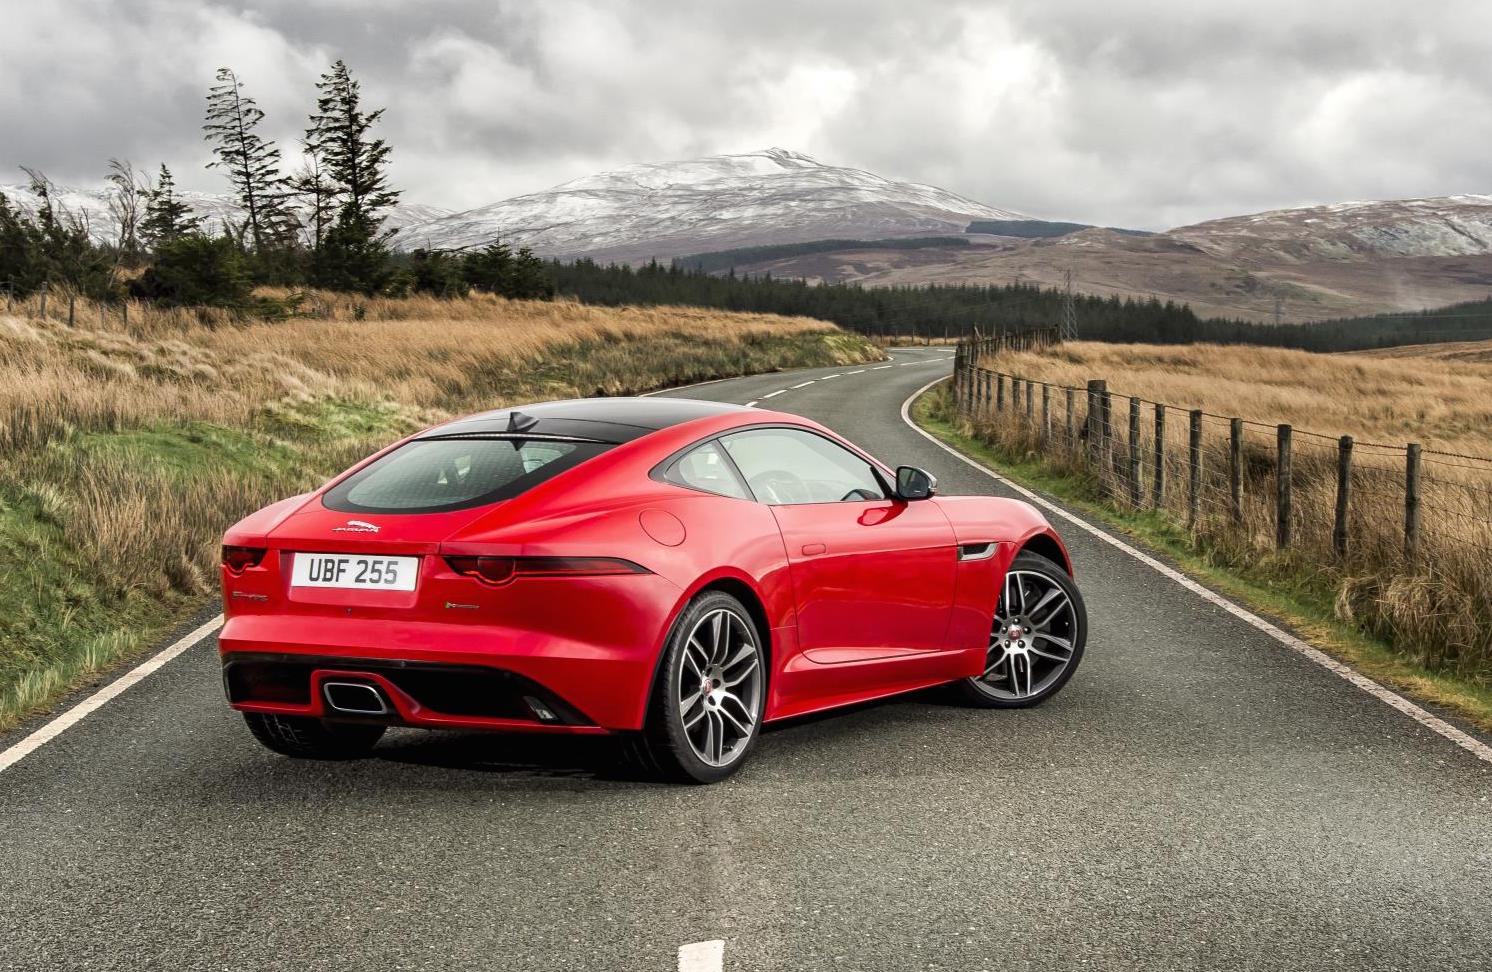 jaguar f type 4 cylinder model revealed 221kw turbo performancedrive. Black Bedroom Furniture Sets. Home Design Ideas